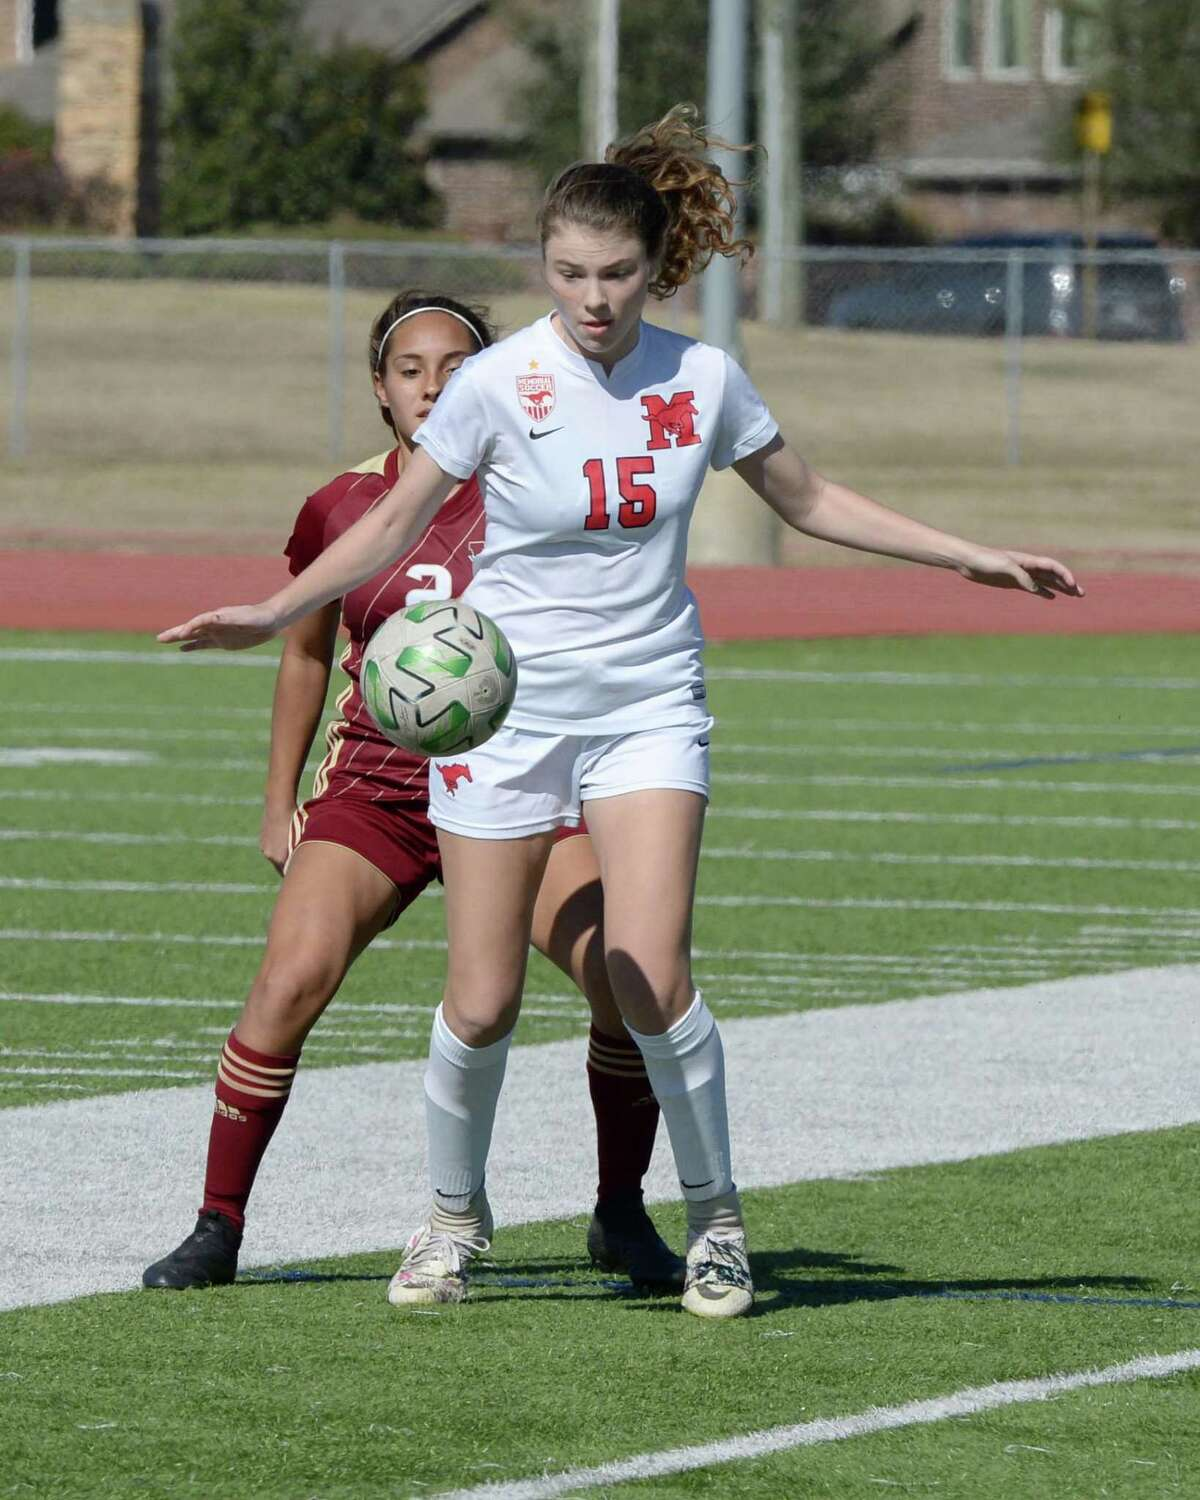 Zoe Seeley (15) of Memorial traps a ball in the second half of the girls soccer game between the Memorial Mustangs and the Cy Woods Wildcats during the I-10 Shootout on Thursday, January 14, 2021 at Tompkins High School, Katy, TX.